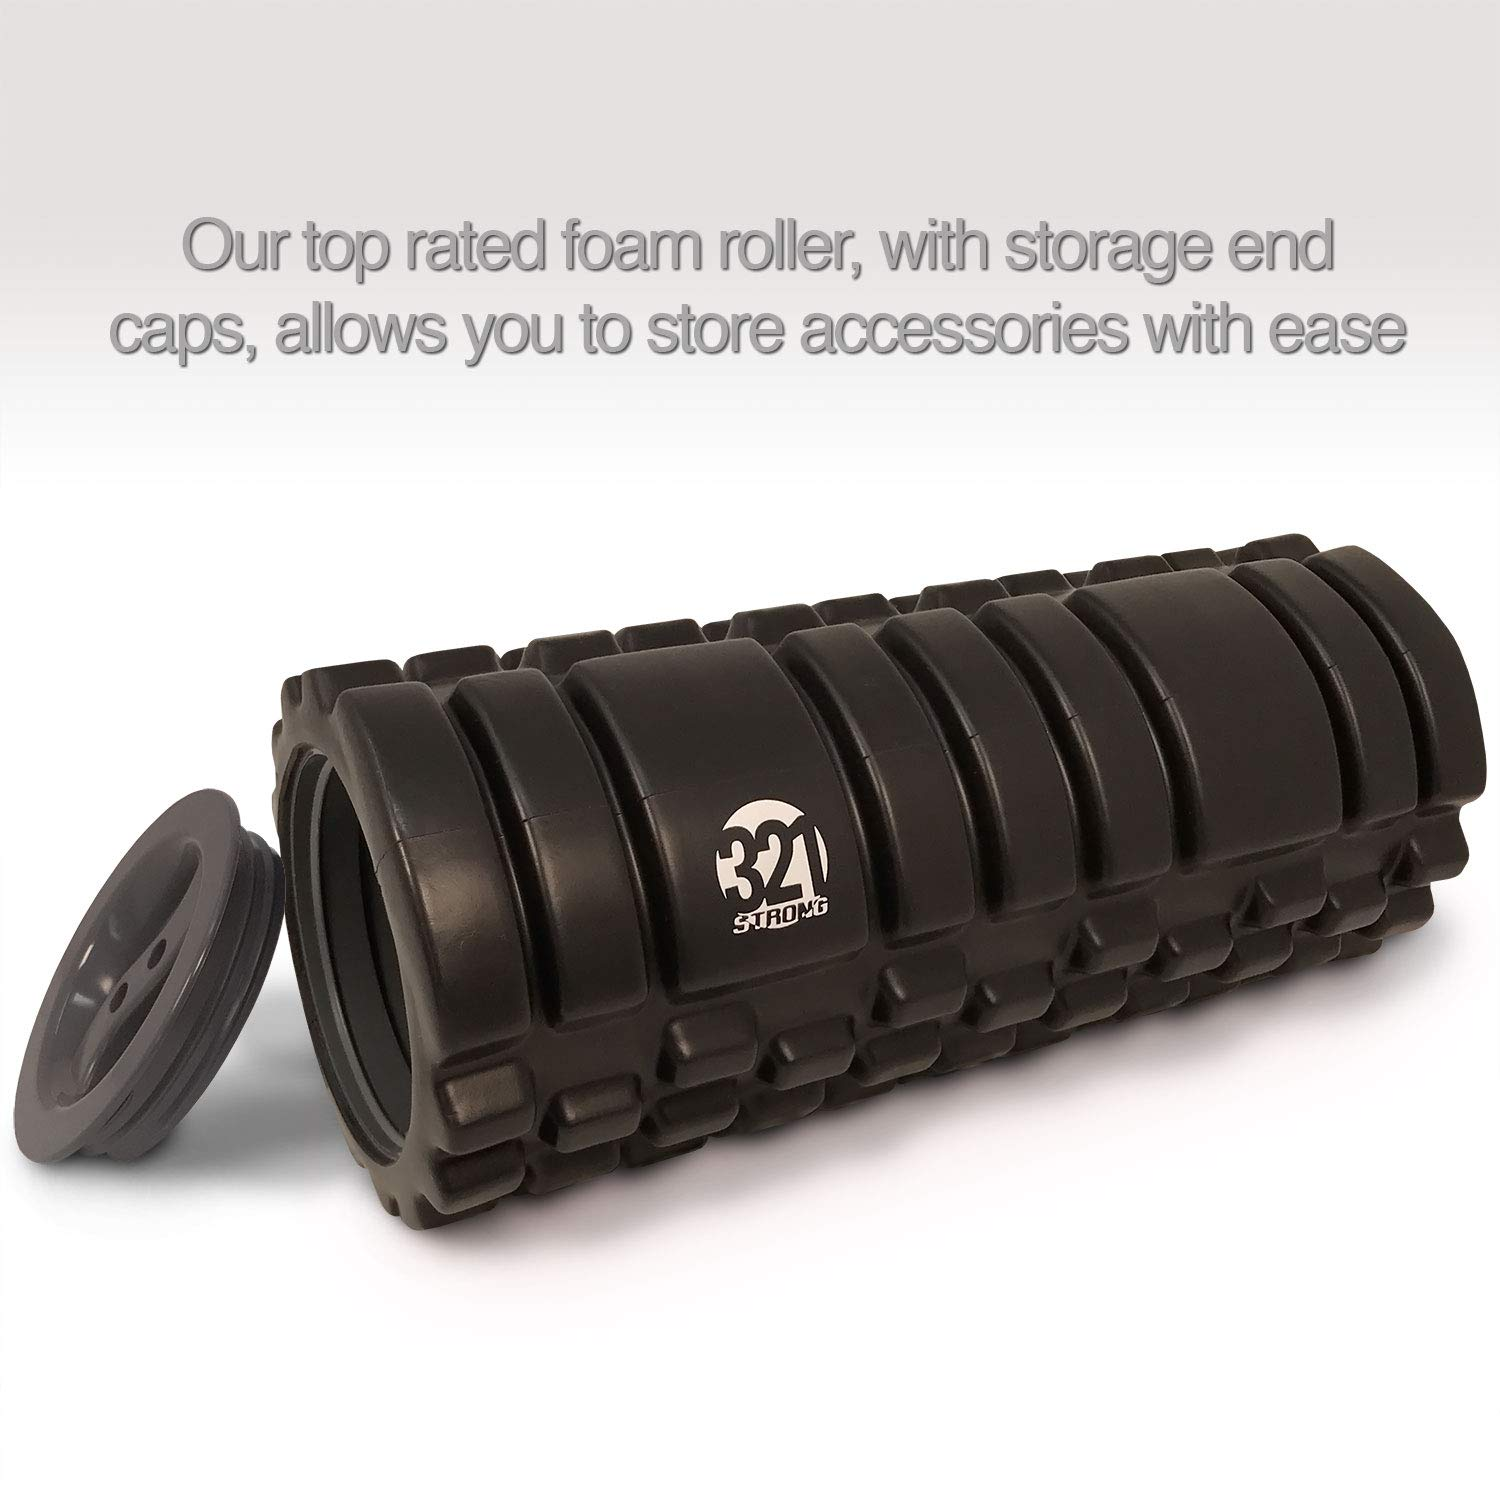 Muscle Roller Stick 321 STRONG 5 in 1 Foam Roller Set Includes Hollow Core Massage Roller with End Caps Grey Stretching Strap All in Giftable Box all in Giftable Box Double Lacrosse Peanut Spikey Plantar Fasciitis Ball